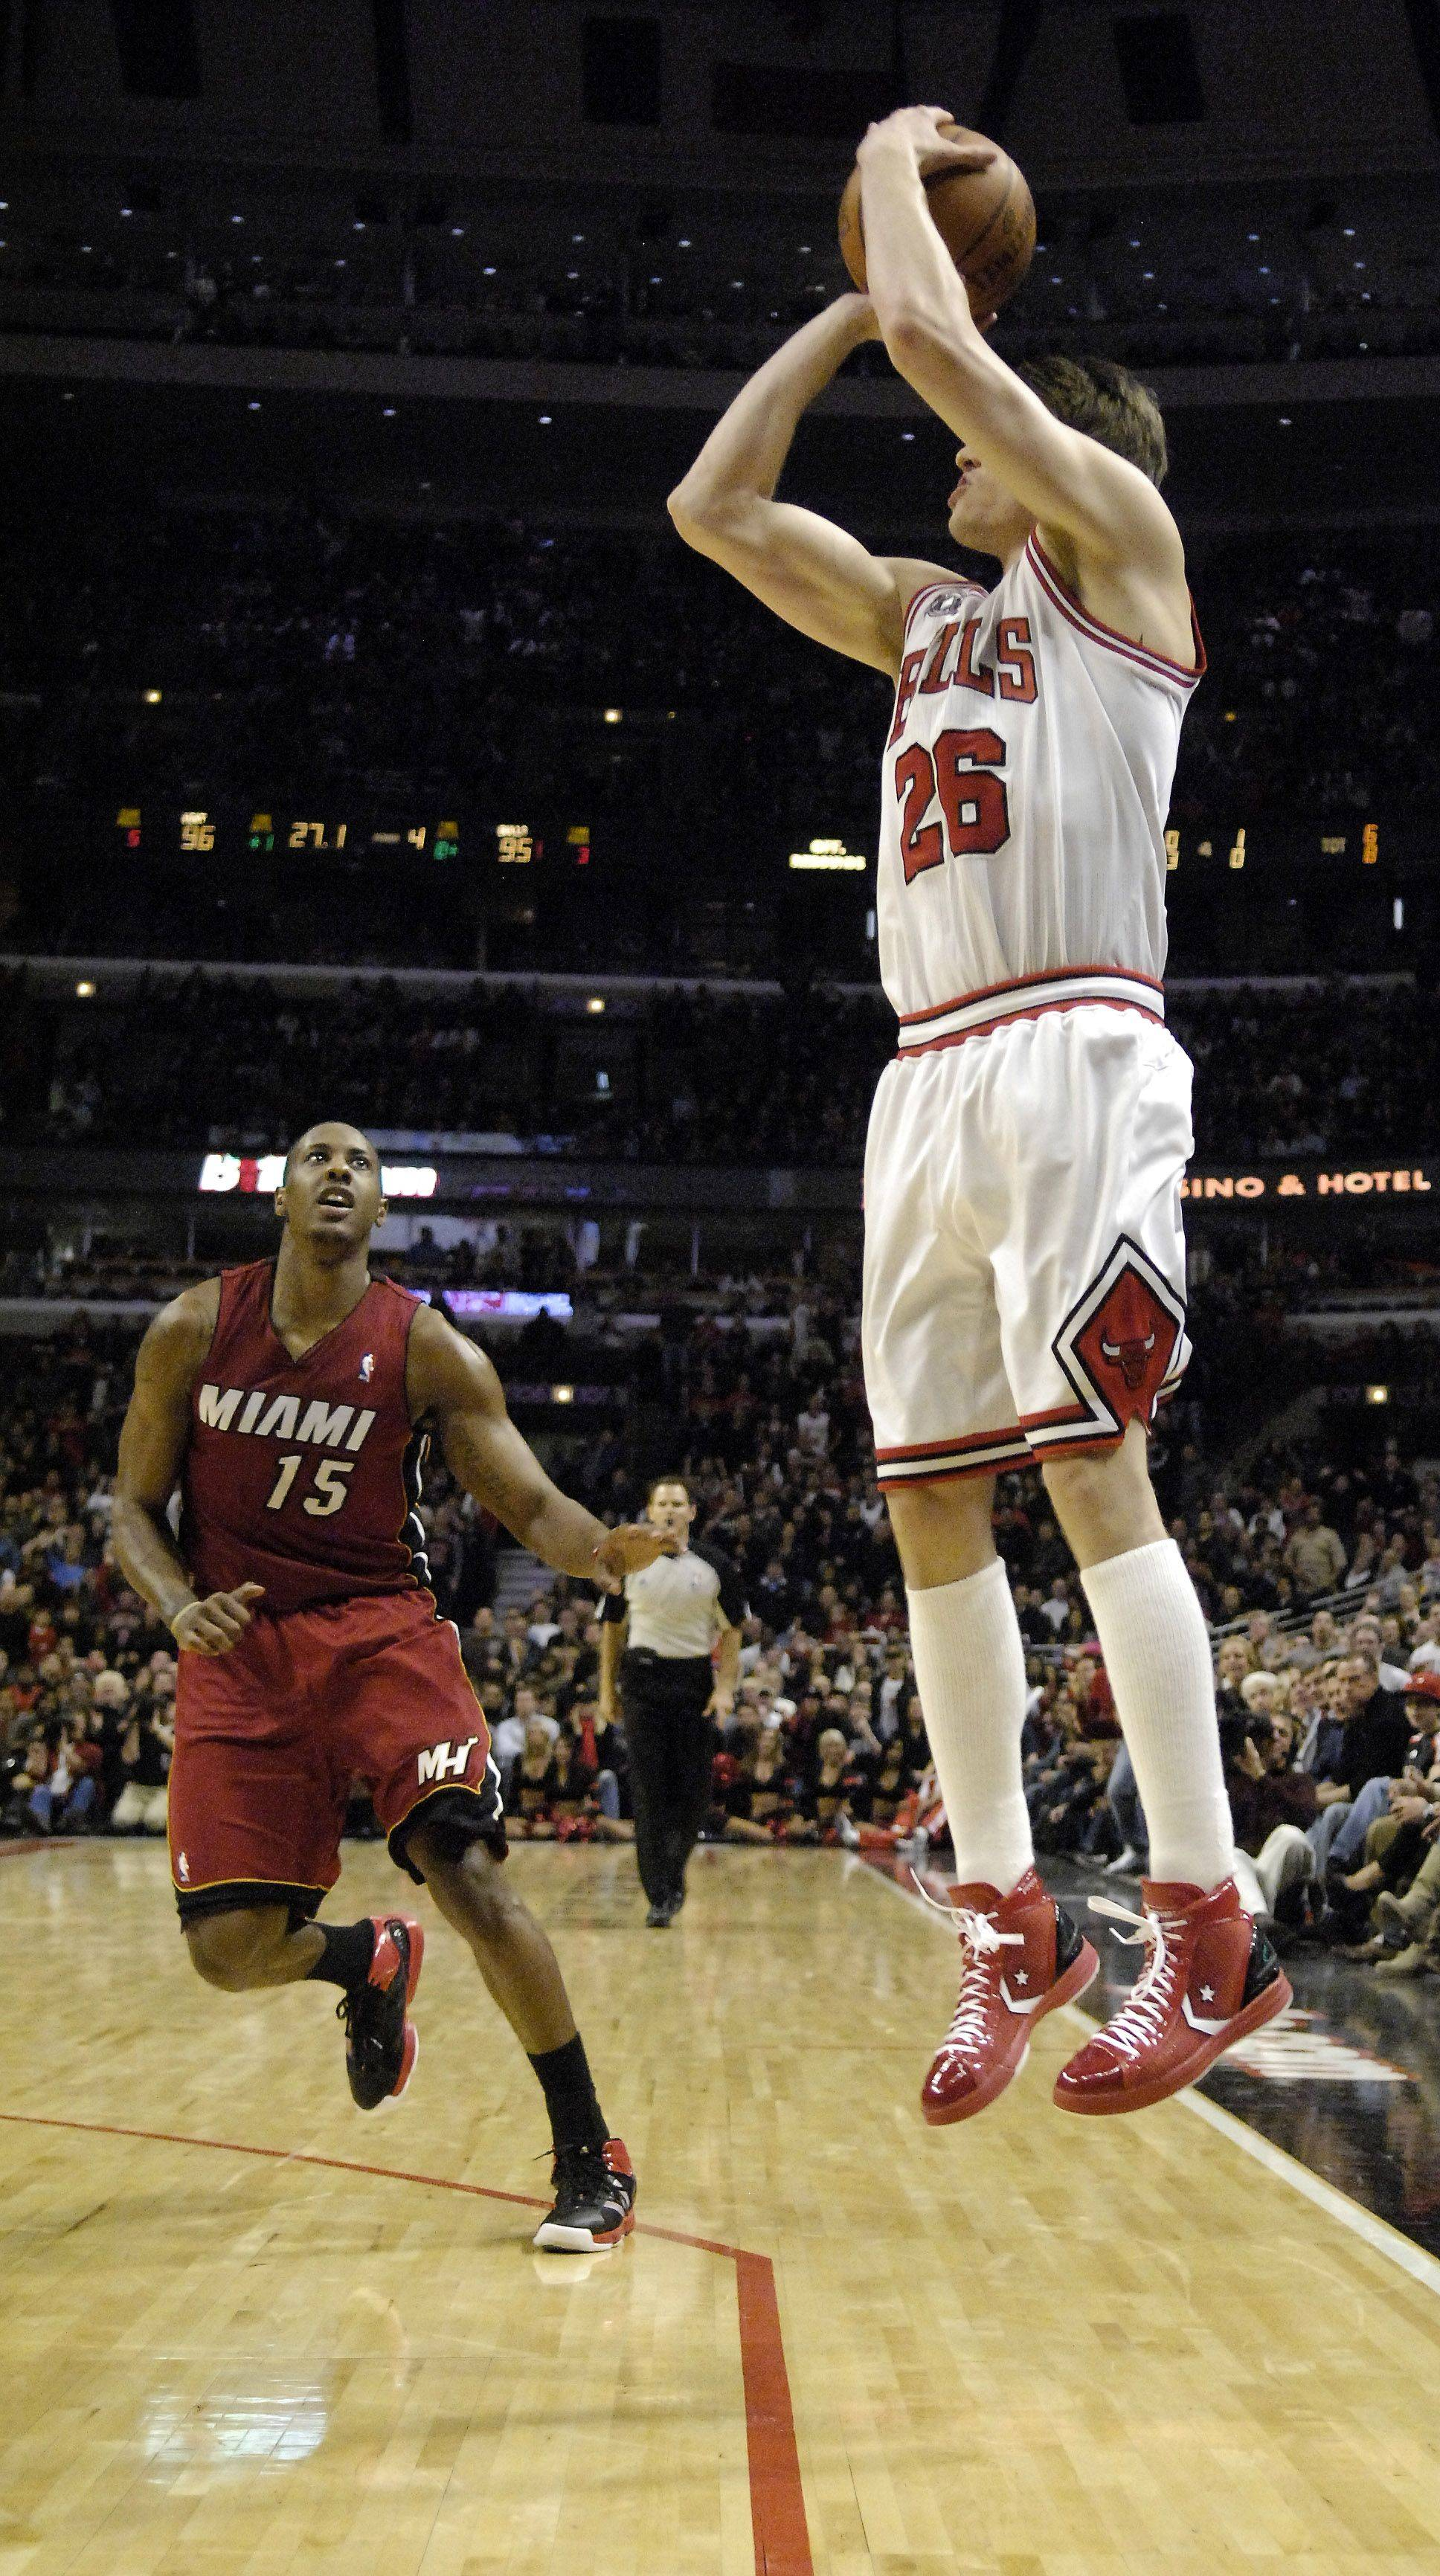 Bulls guard Kyle Korver makes a go-ahead 3-pointer in the final minute during Saturday's game against Miami at the United Center in Chicago.